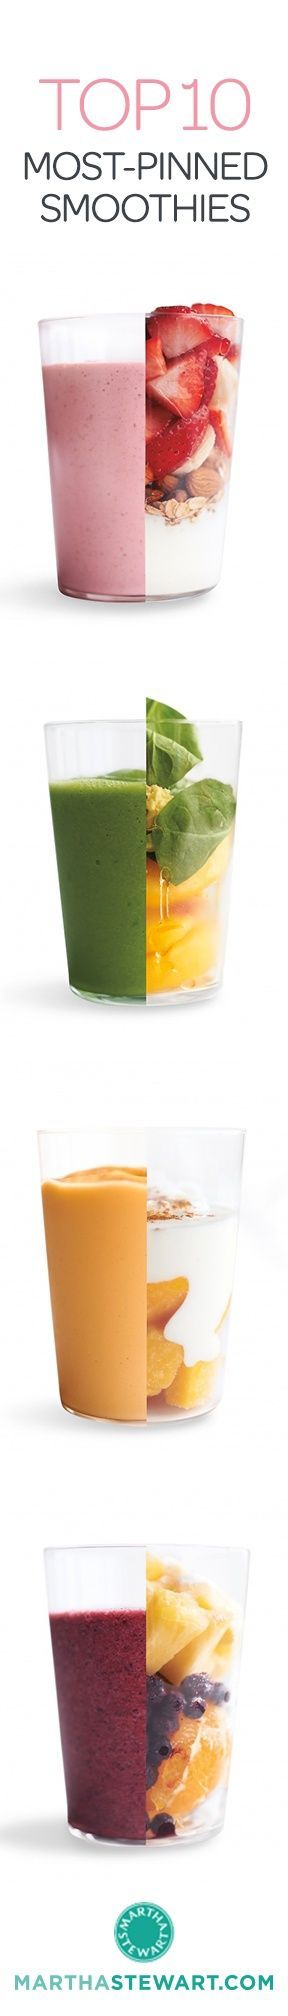 Most-Pinned: Our Top 10 Most-Pinned Smoothie Recipes | Martha Stewart Living - Packed with fresh fruits and veggies, smoothies are a great -- and delicious -- way to get your fill of energy-boosting proteins and healthy fats. Blend your way to better health with the top 10 most-repinned smoothies from our Pinterest boards.